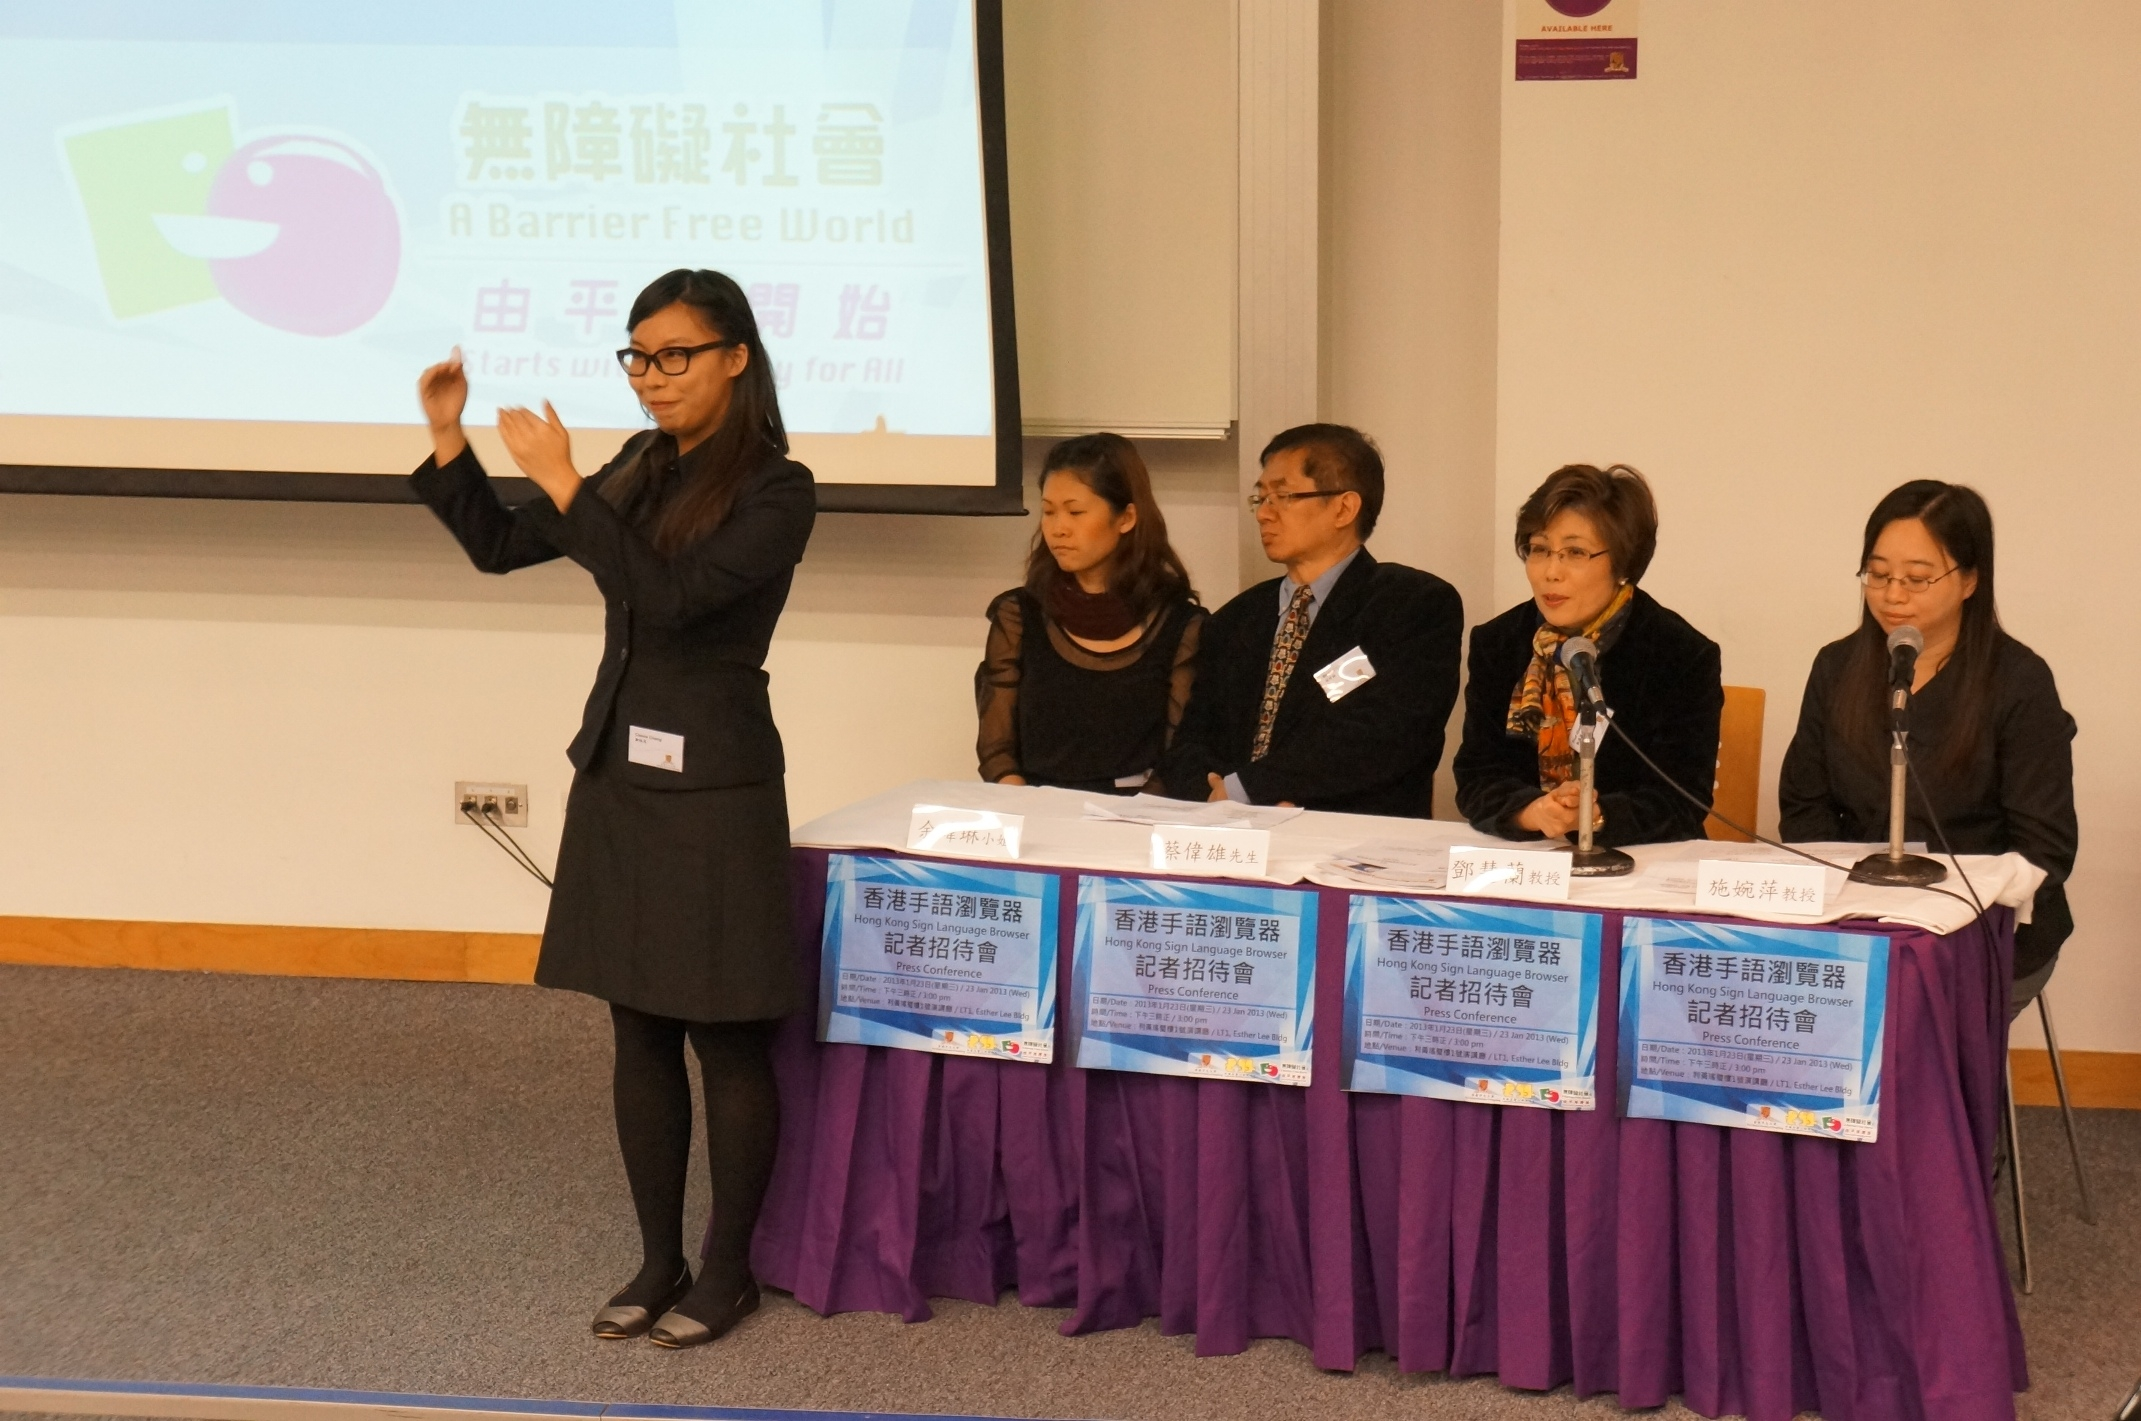 (From right) Prof. Felix SZE, Research Assistant Professor, Department of Linguistics and Modern Languages, CUHK; Prof. Gladys TANG, Director of Centre for Sign Linguistics and Deaf Studies, CUHK; Mr. Michael CHOI and Miss Brenda YU, Language research project assistant, Centre for Sign Linguistics and Deaf studies; and Miss Cassia CHENG, Sign language interpreter.